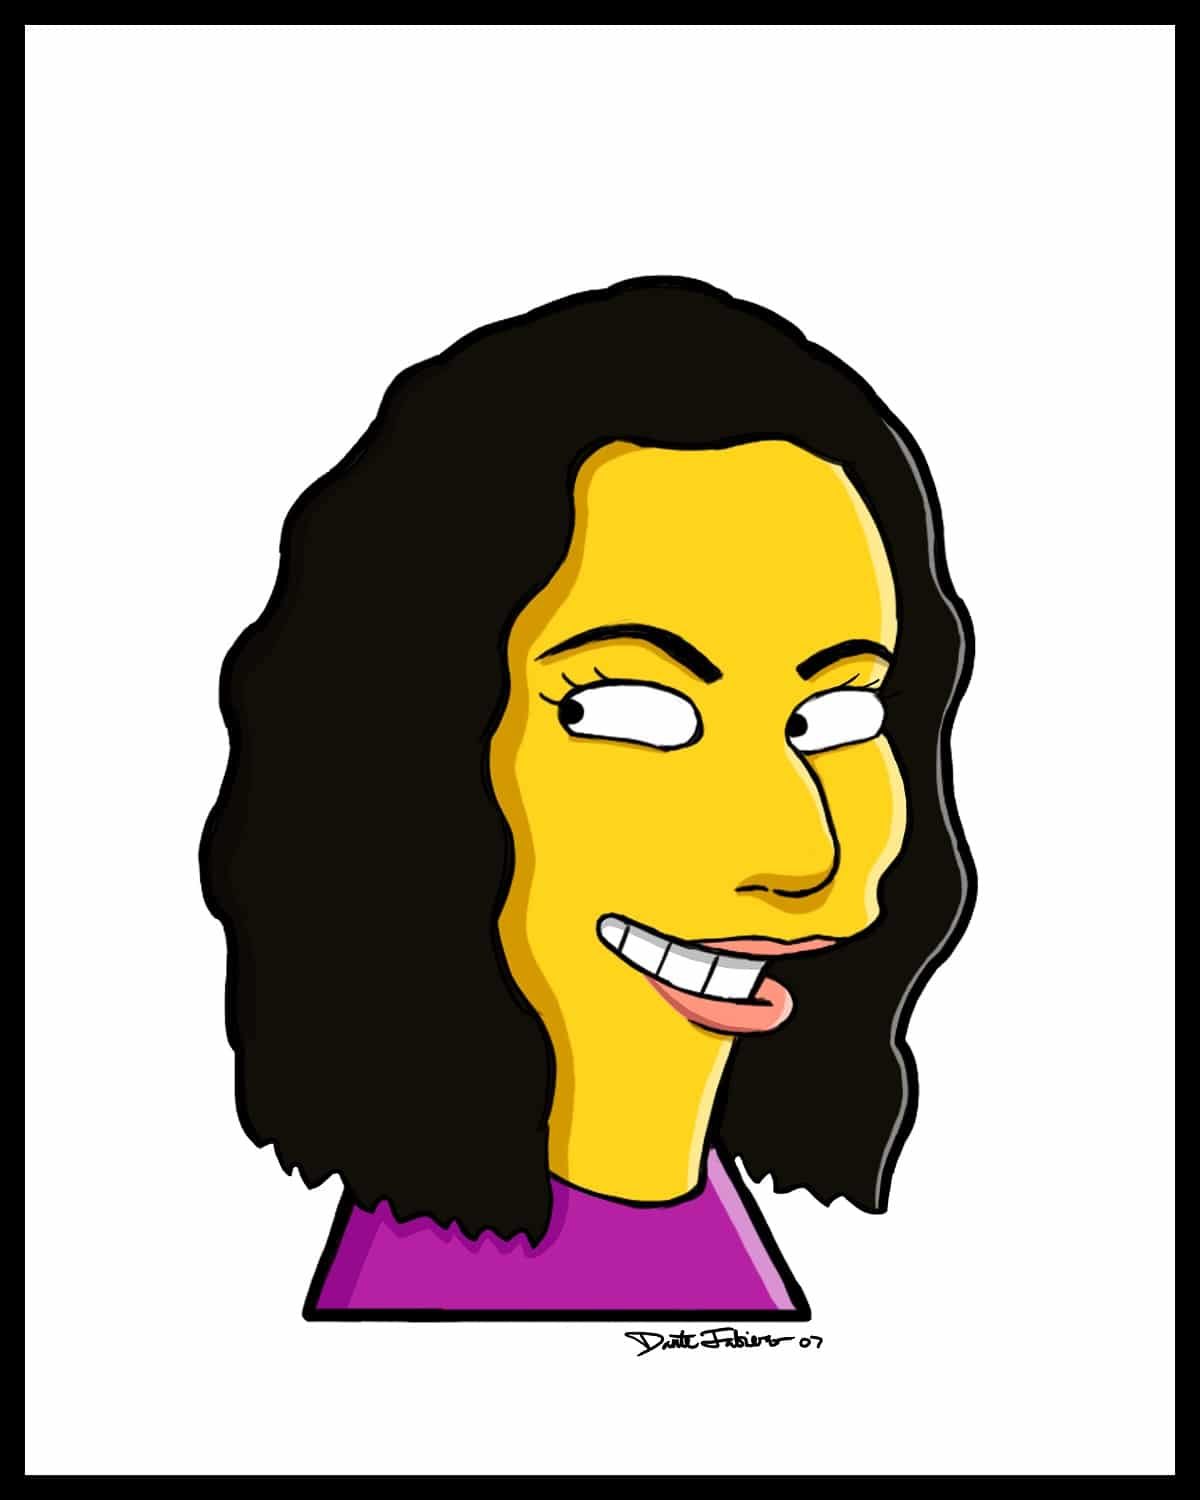 a Simpsons style caricature of a woman with dark wavy hair